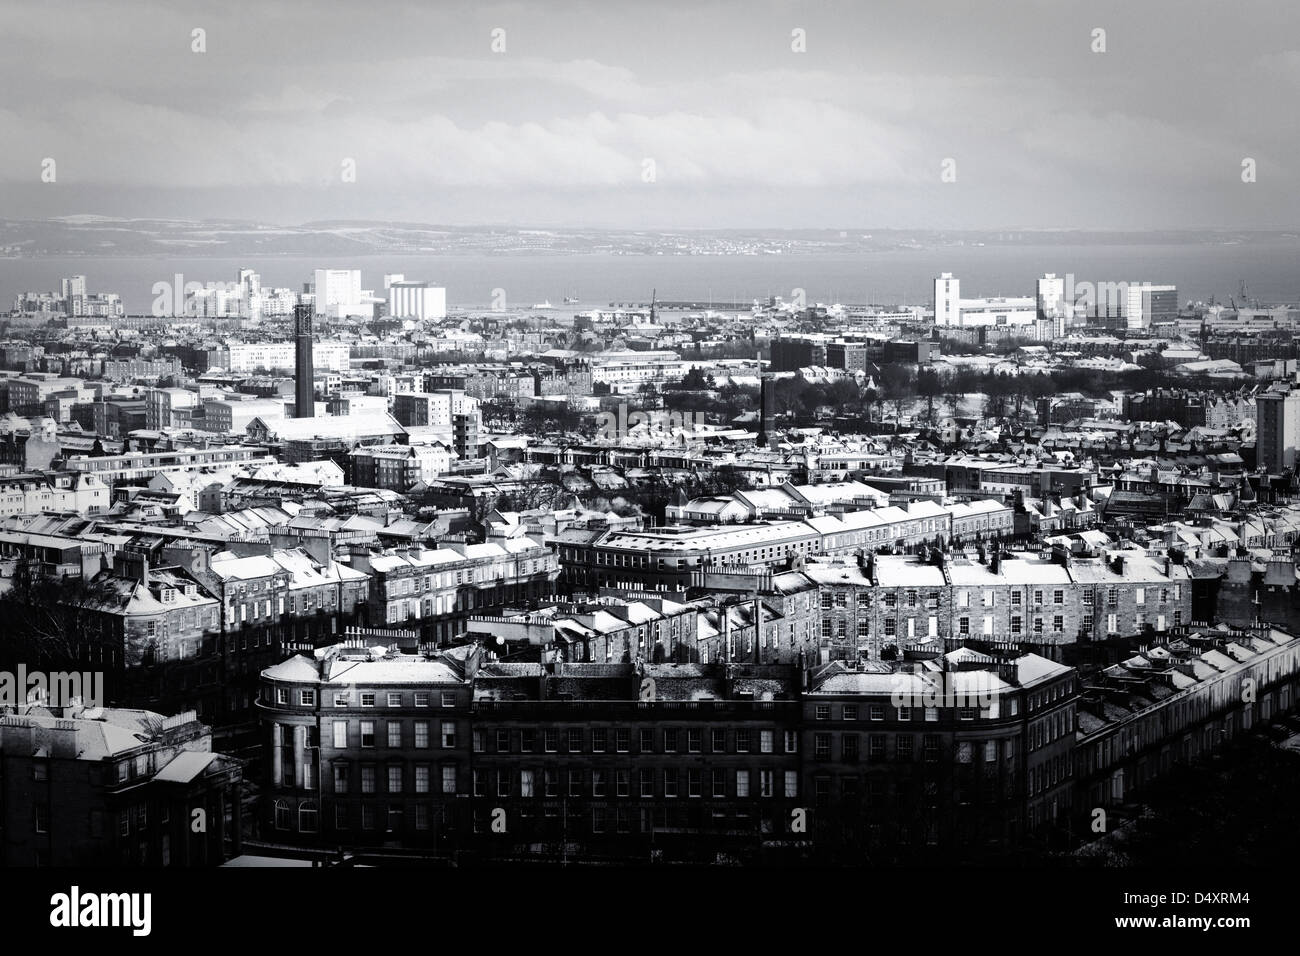 View from Carlton Hill in Edinburgh of Leith roof tops with snow on them and ground. - Stock Image